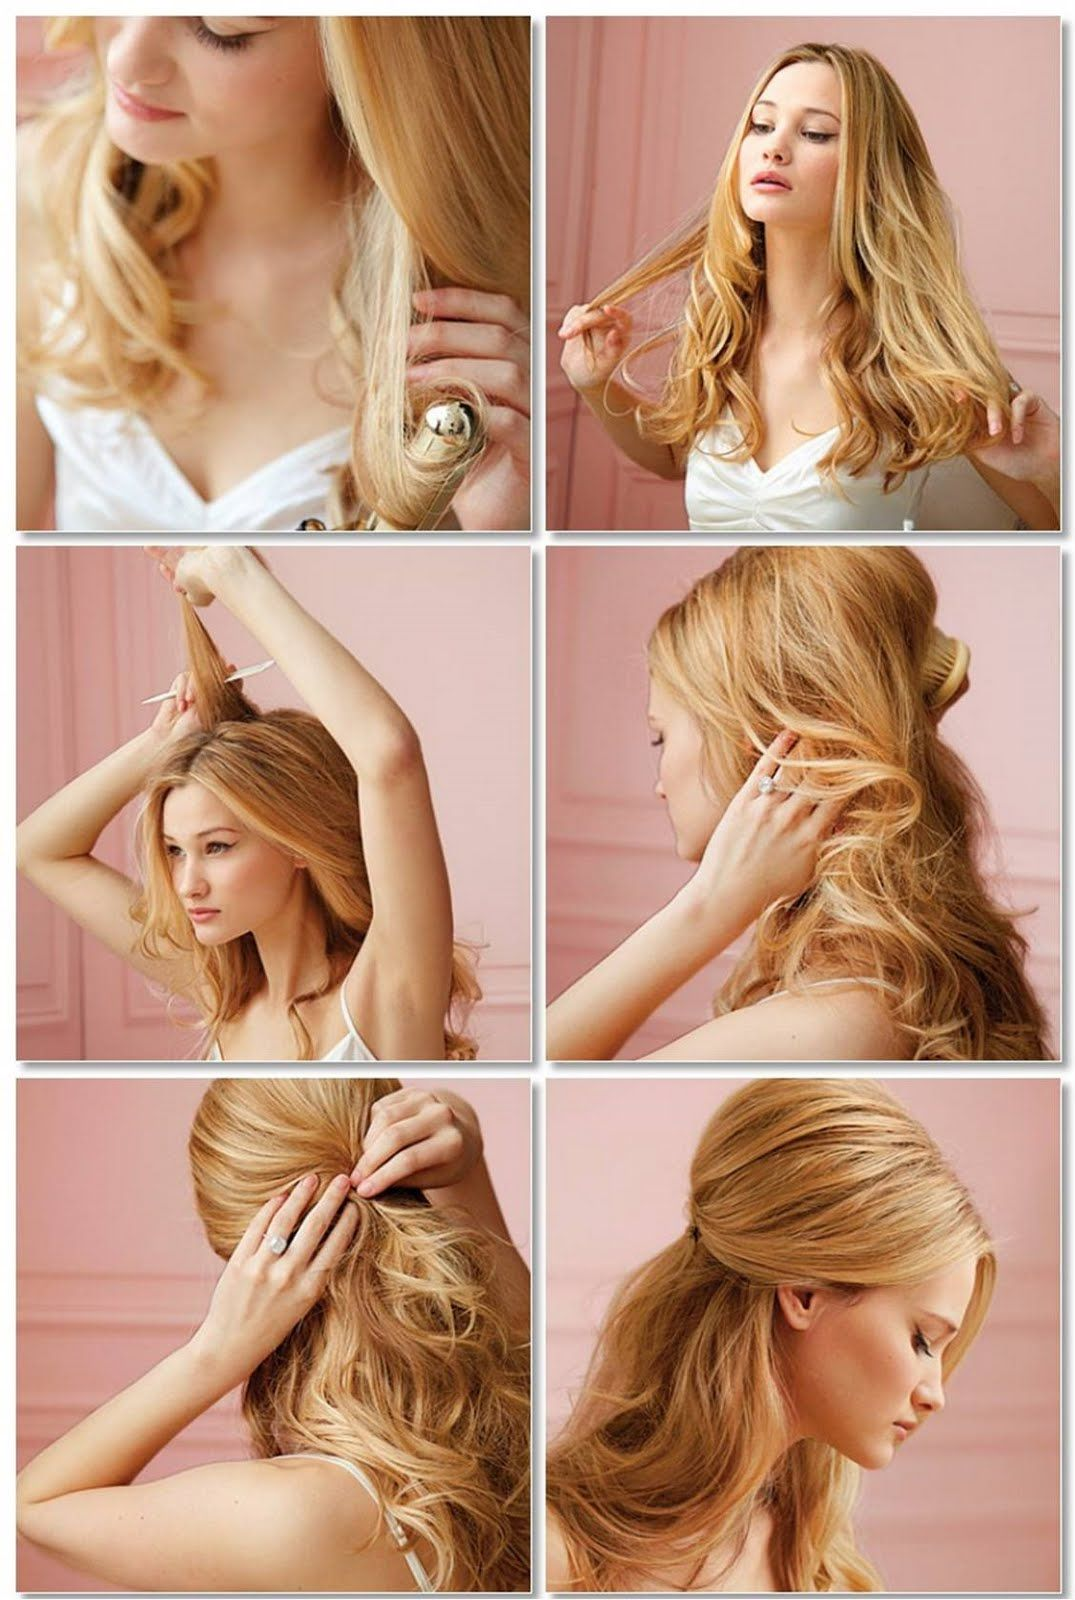 1000 images about Frisuren on Pinterest  Updo, Braided buns and